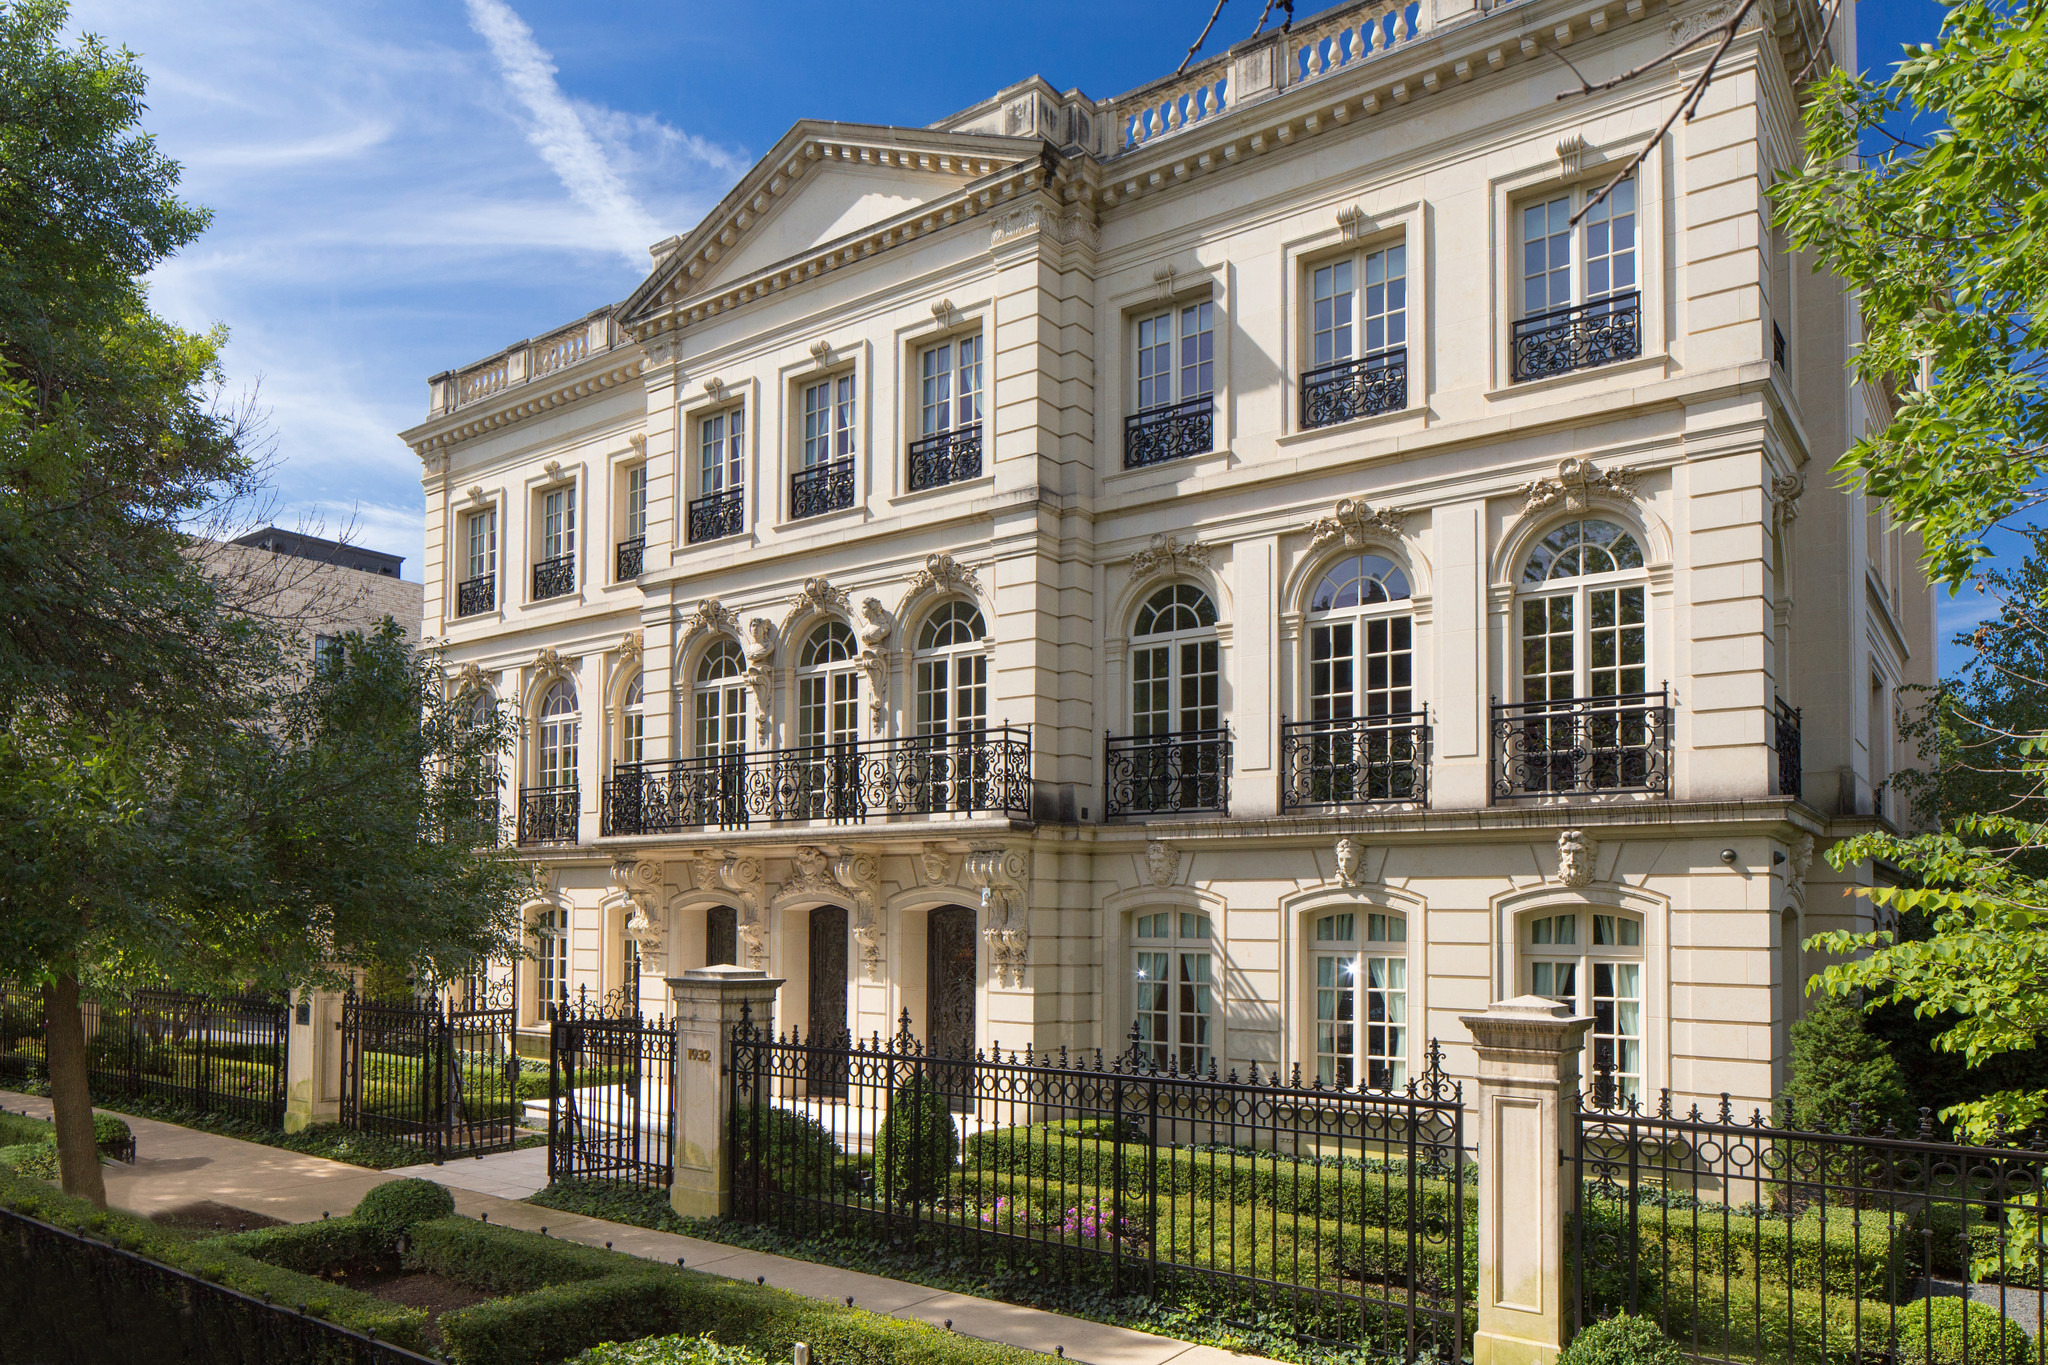 Lincoln park mansion for sale at record 50 million asking for Mansion in chicago for sale